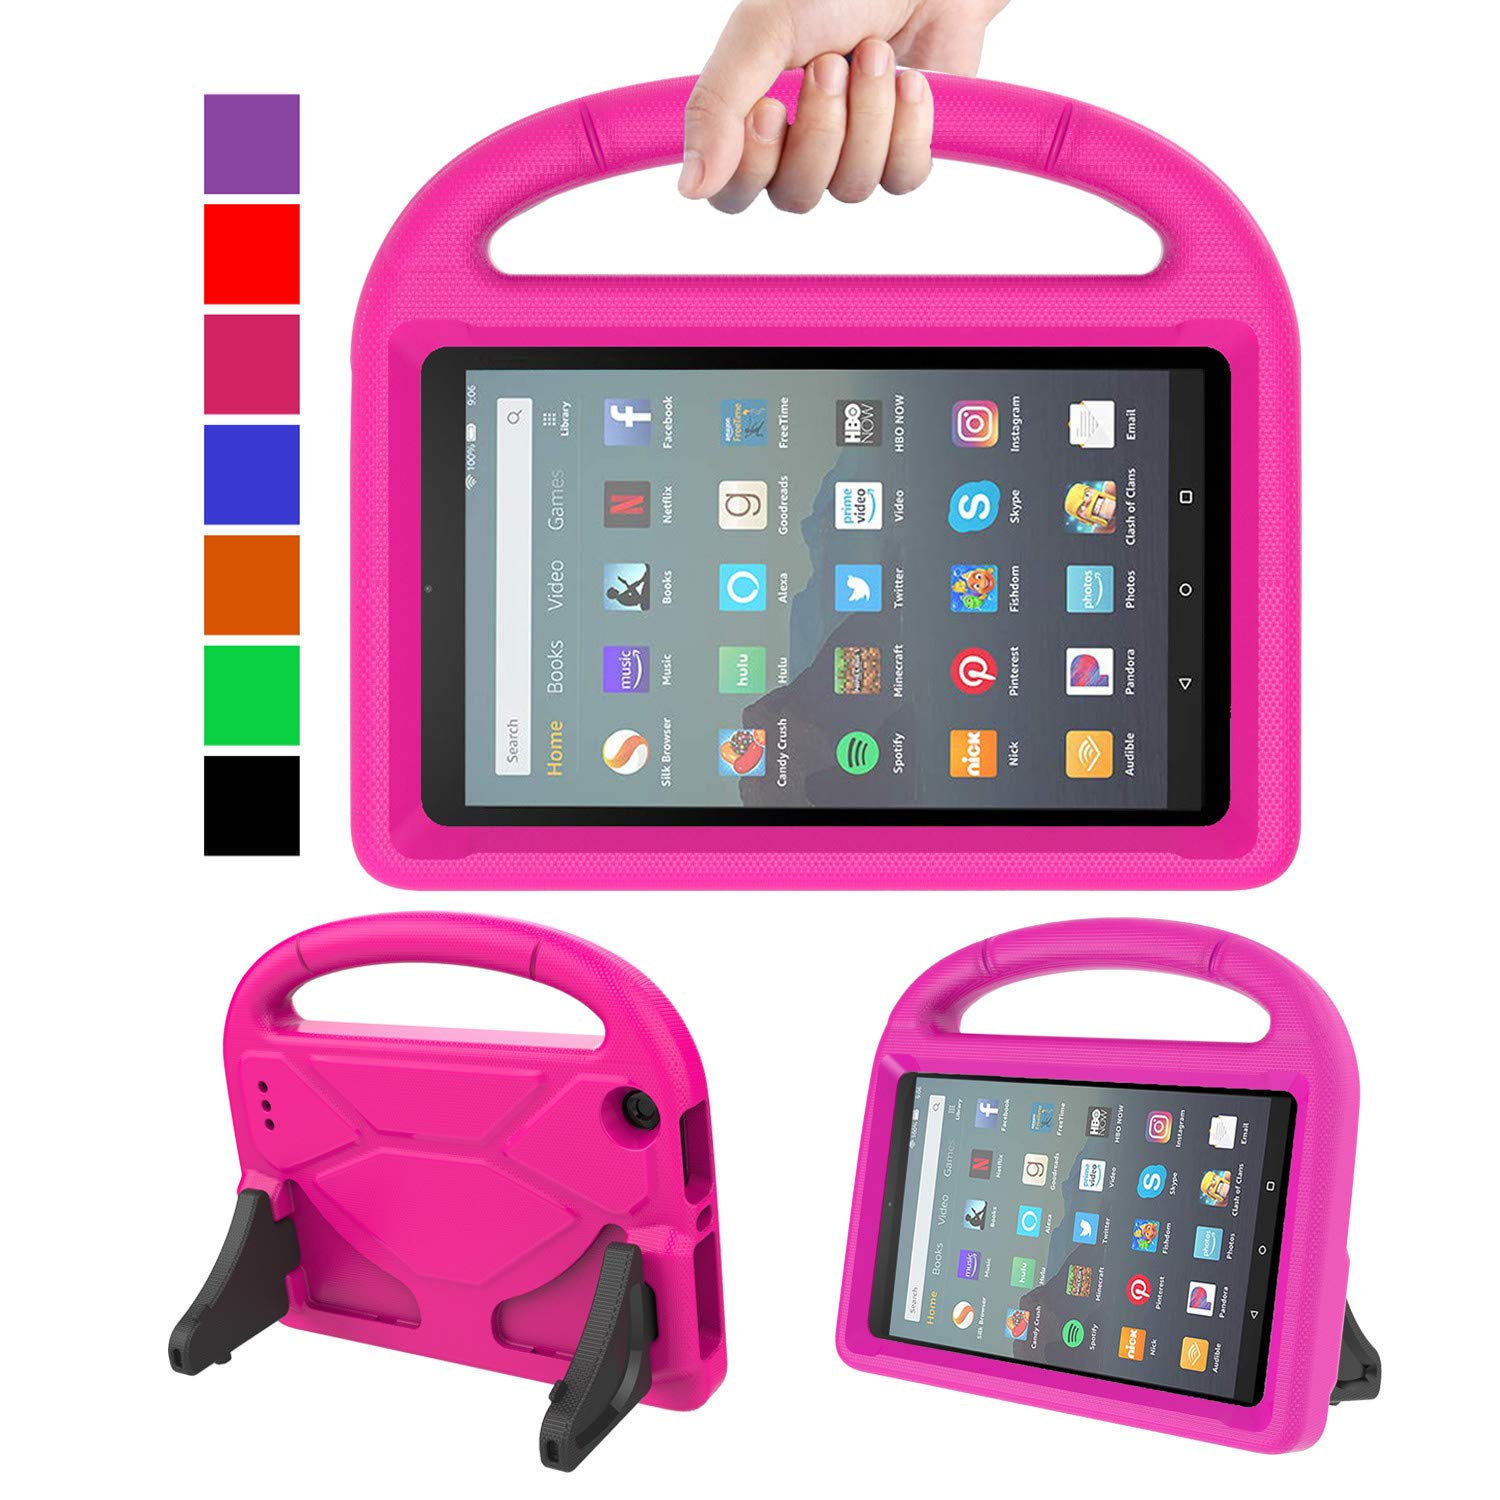 MENZO Kids Case for All-New Fire 7 Tablet (9th Generation - 2019 Release),  Light Weight Shockproof Handle Stand Kids Friendly Case for Amazon Fire 7